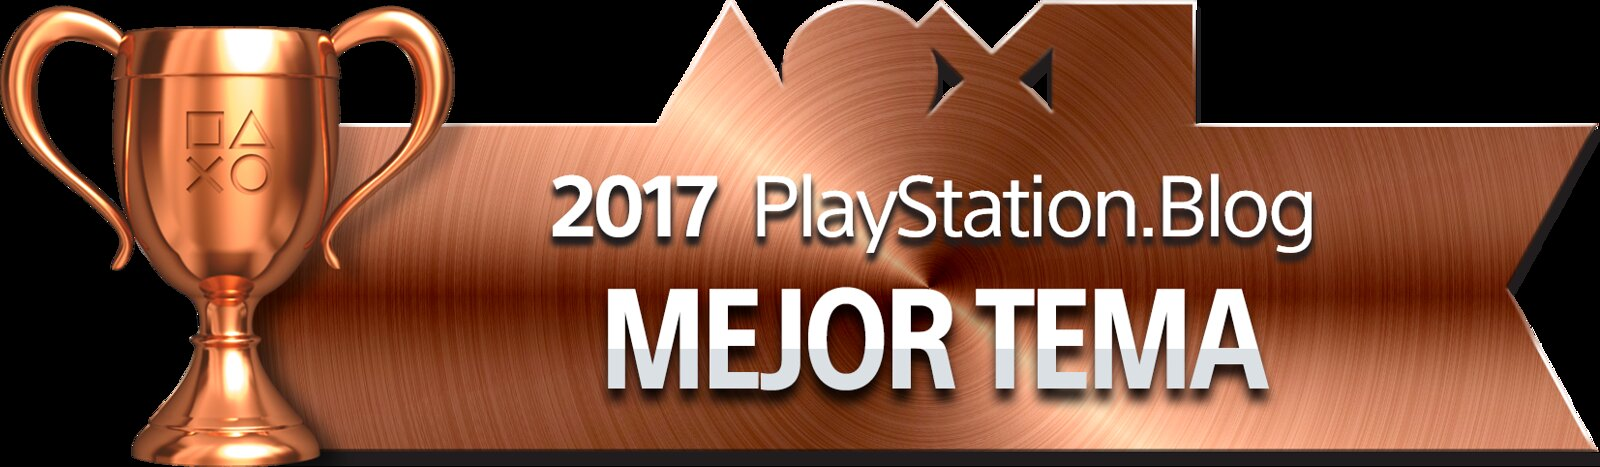 PlayStation Blog Game of the Year 2017 - Best PS4 Theme (Bronze)